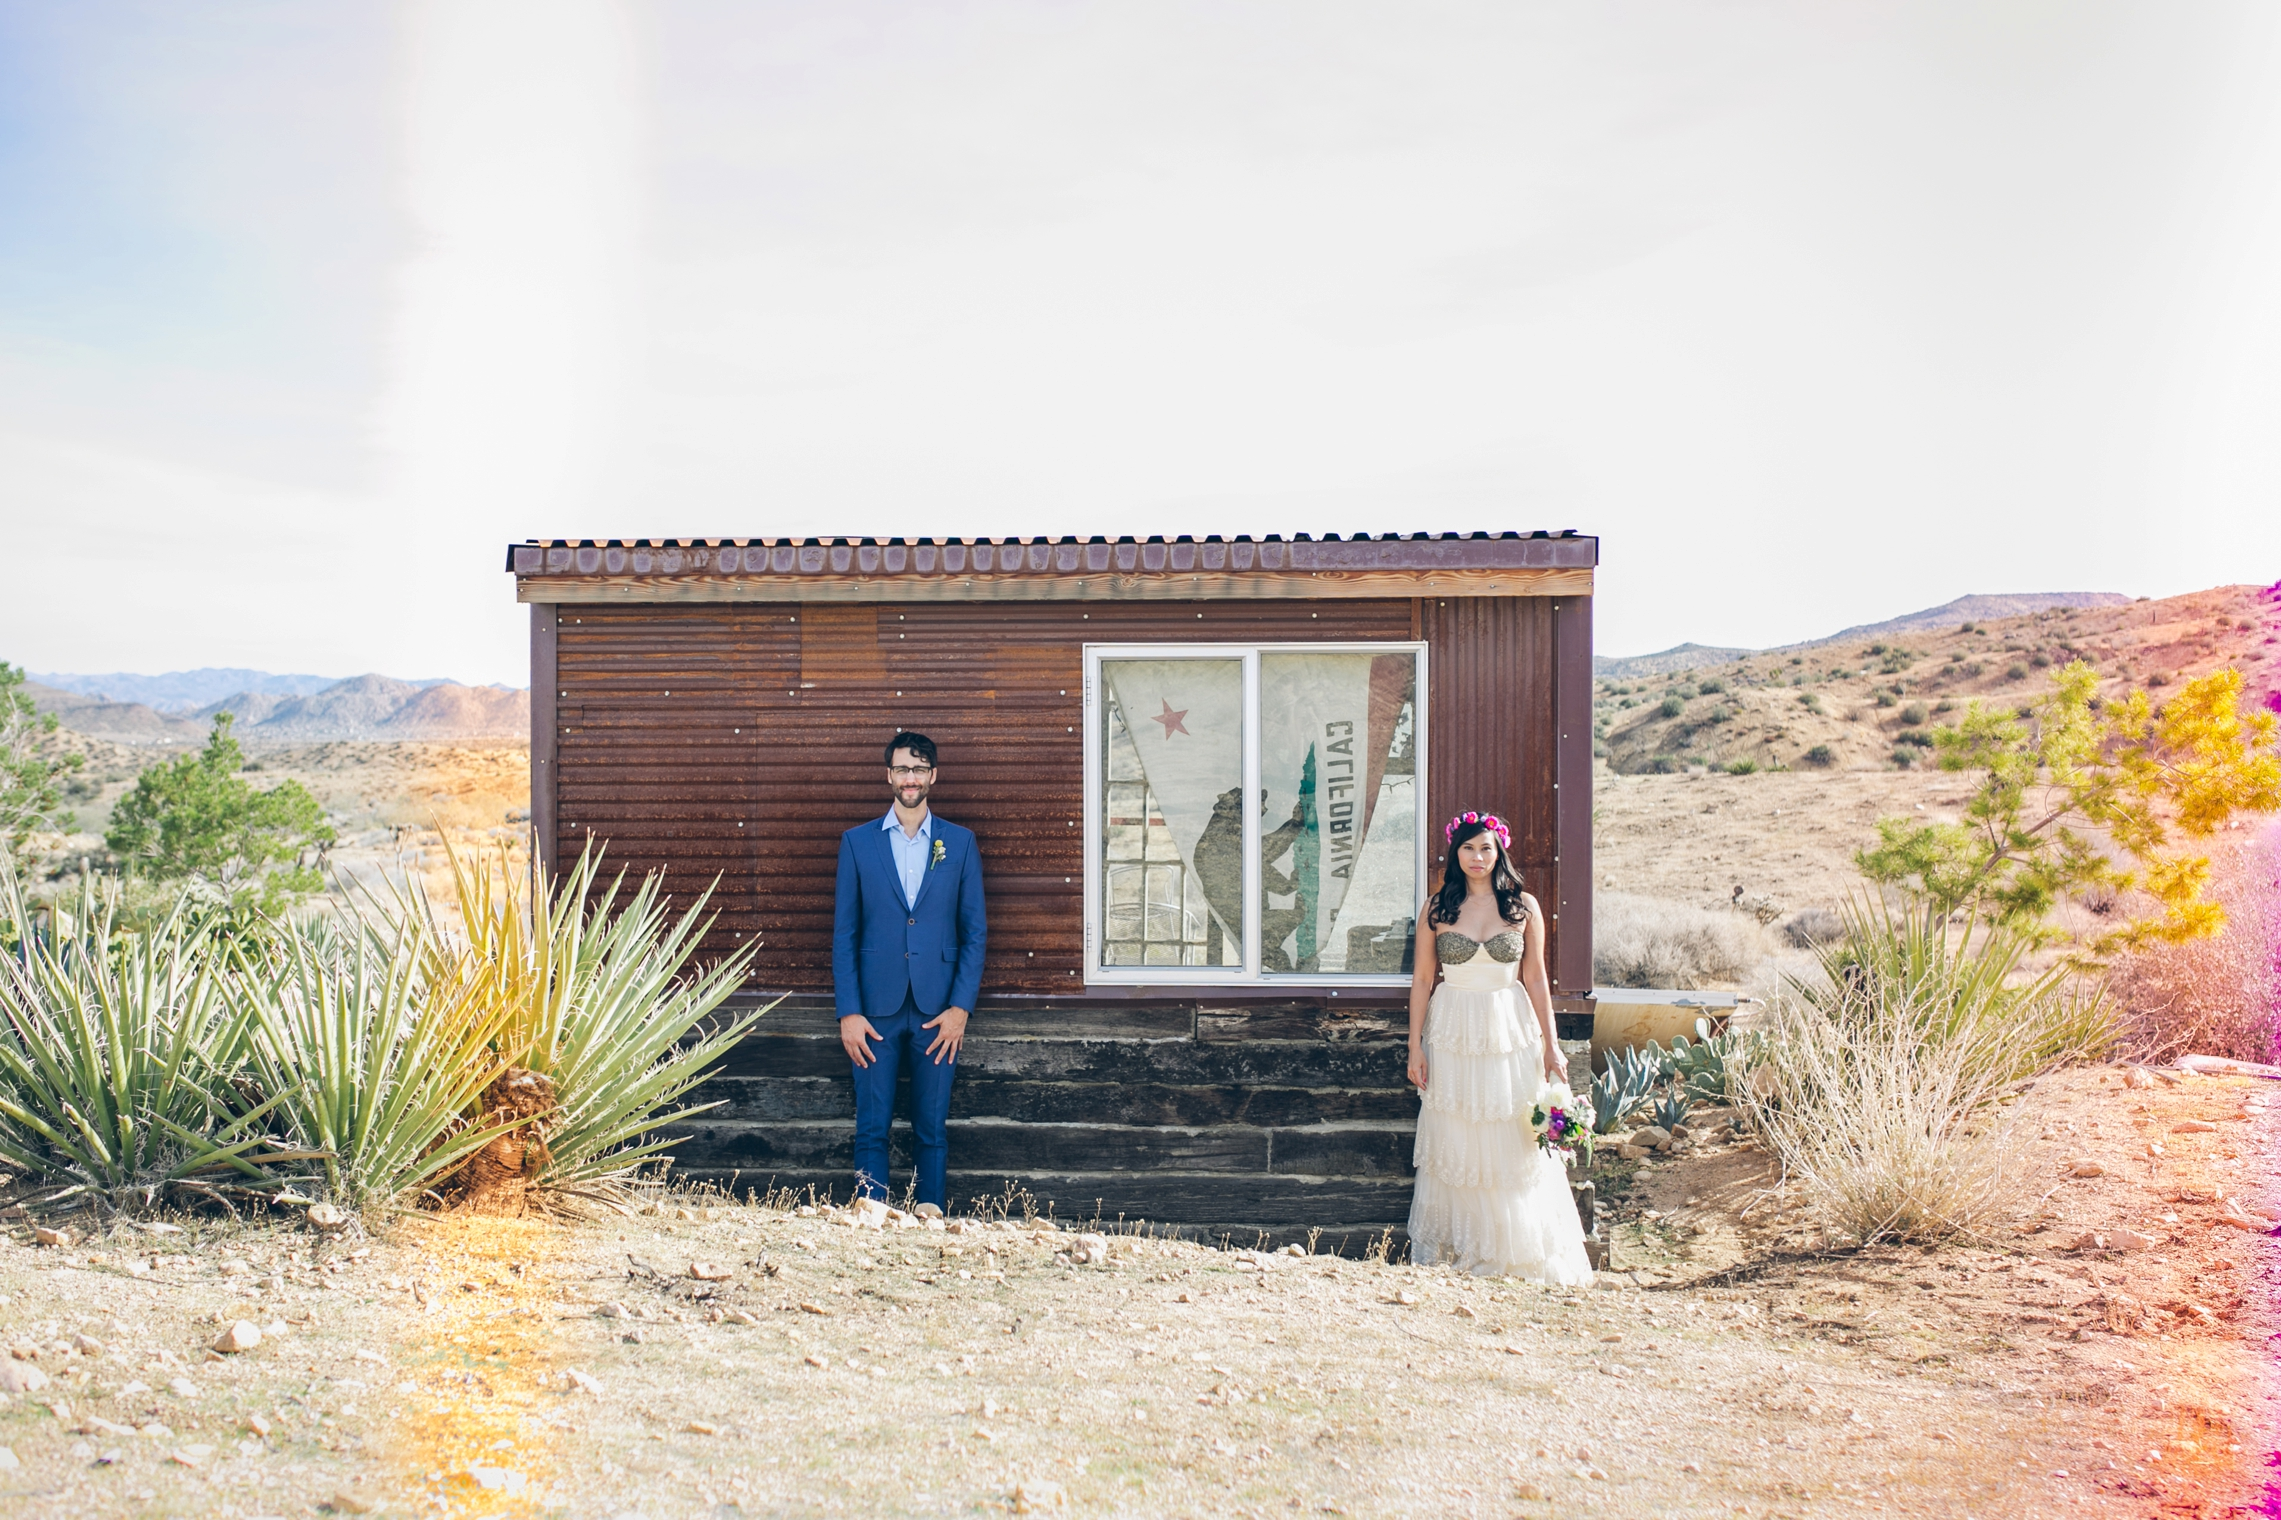 JOSHUA TREE & RIMROCK RANCH WEDDING